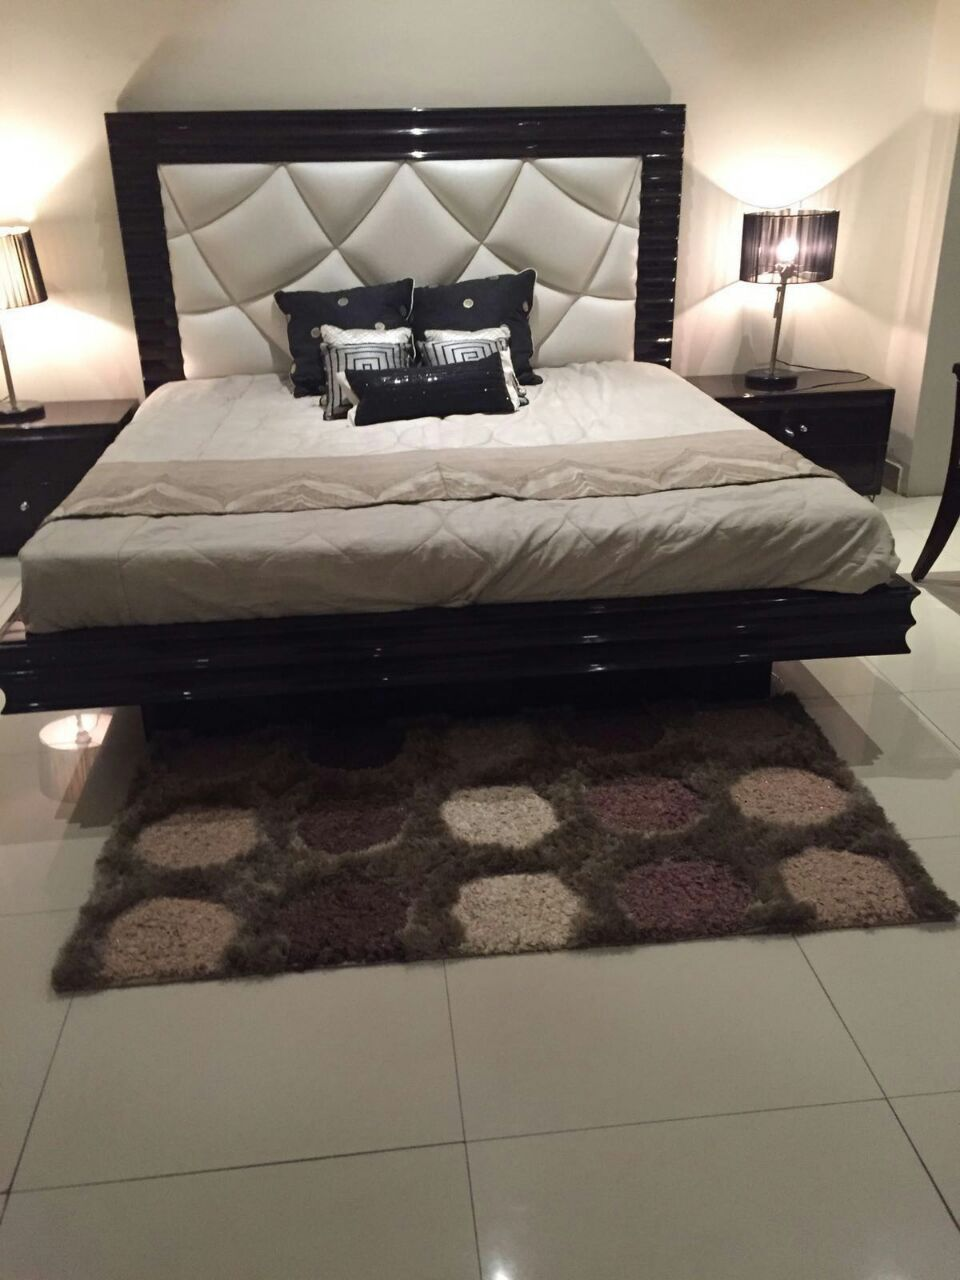 White and Black Designer Bed with sides